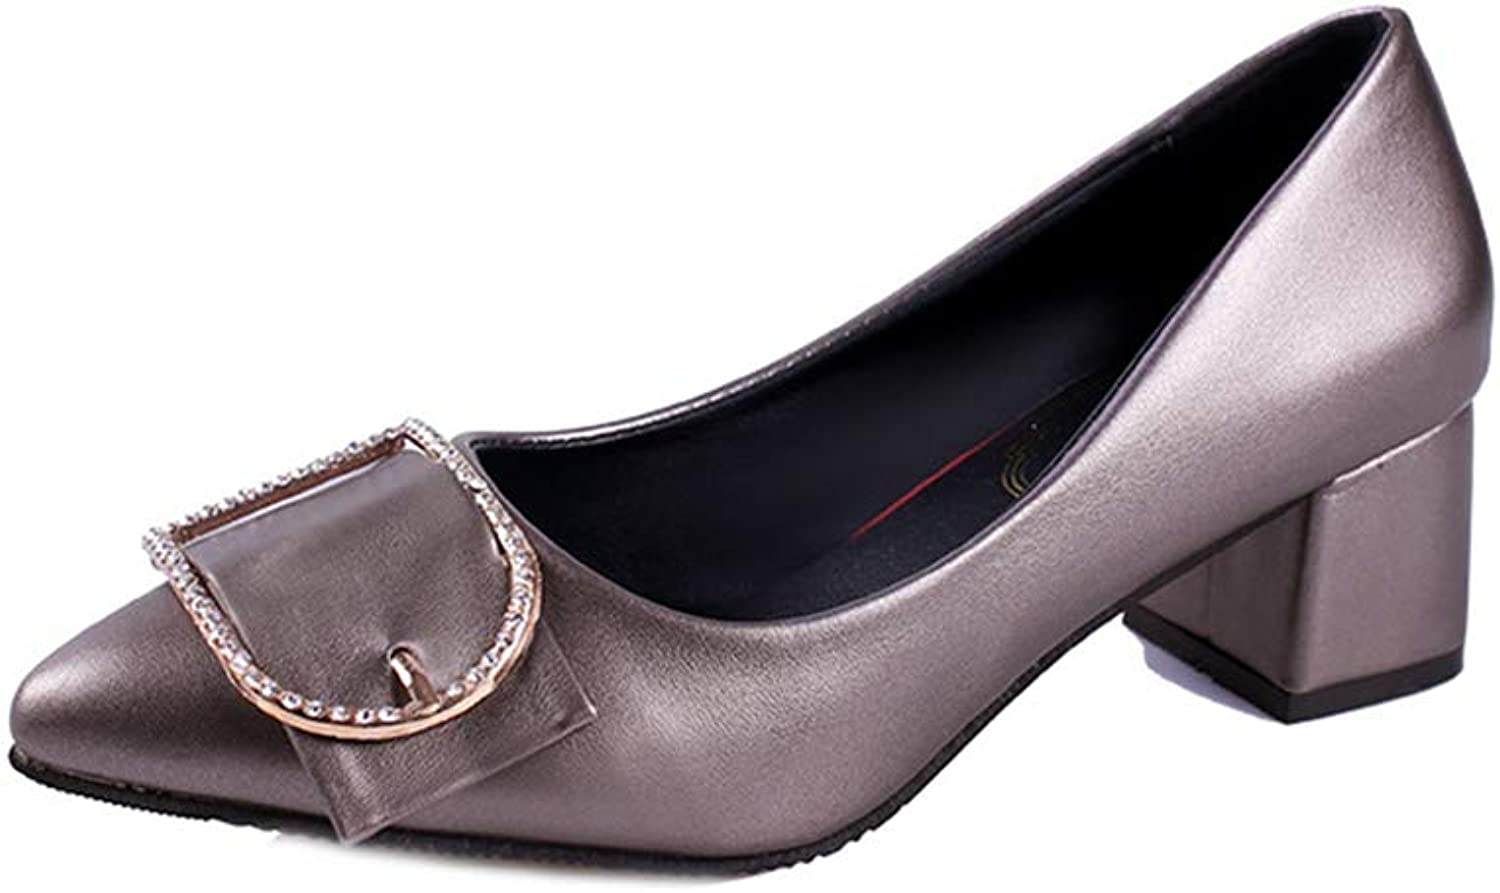 Sunny Day New Single shoes Women Large Size Fashion Pointed shoes